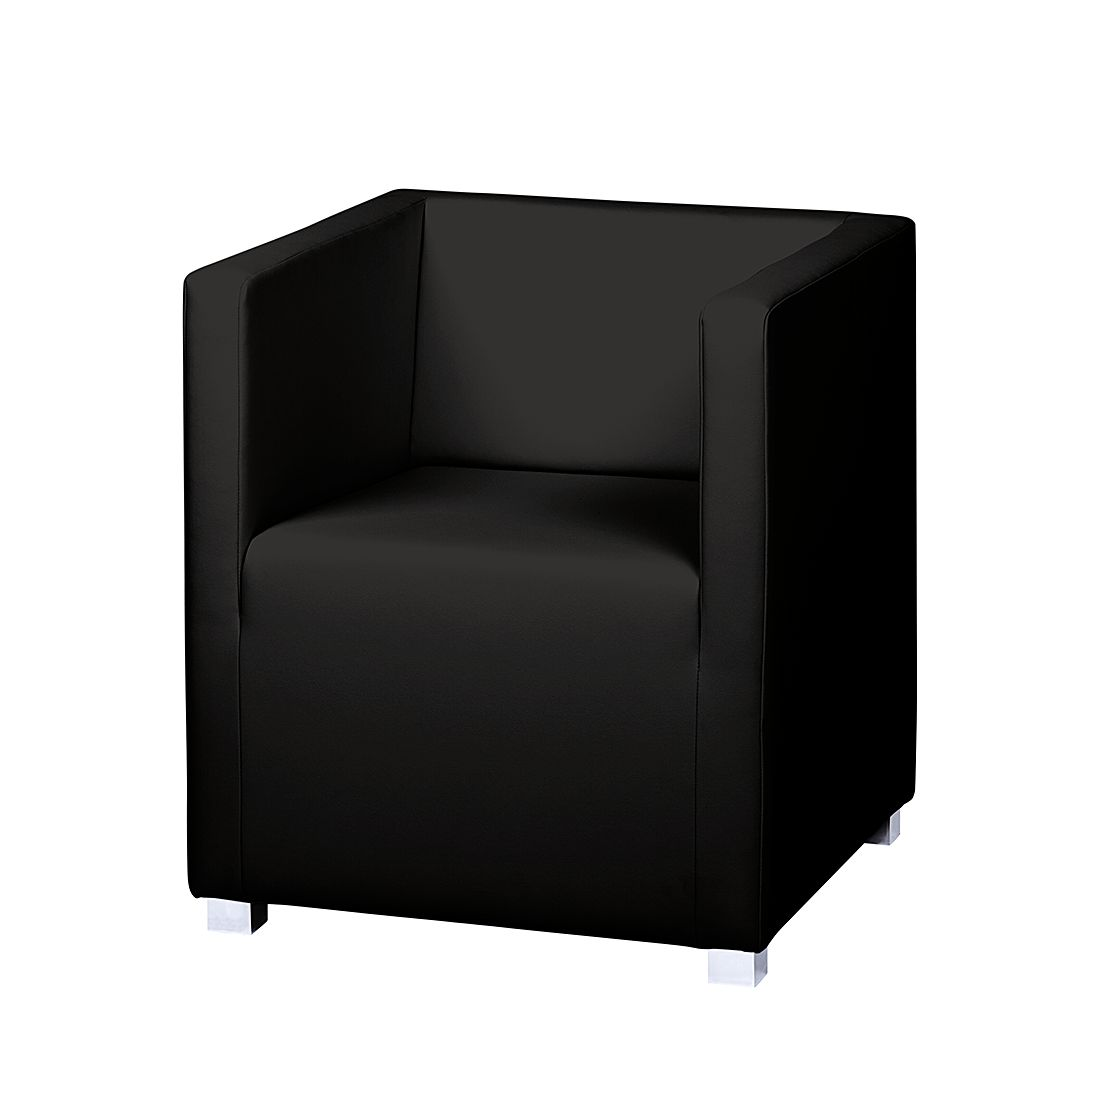 Fauteuil Carmen, mooved